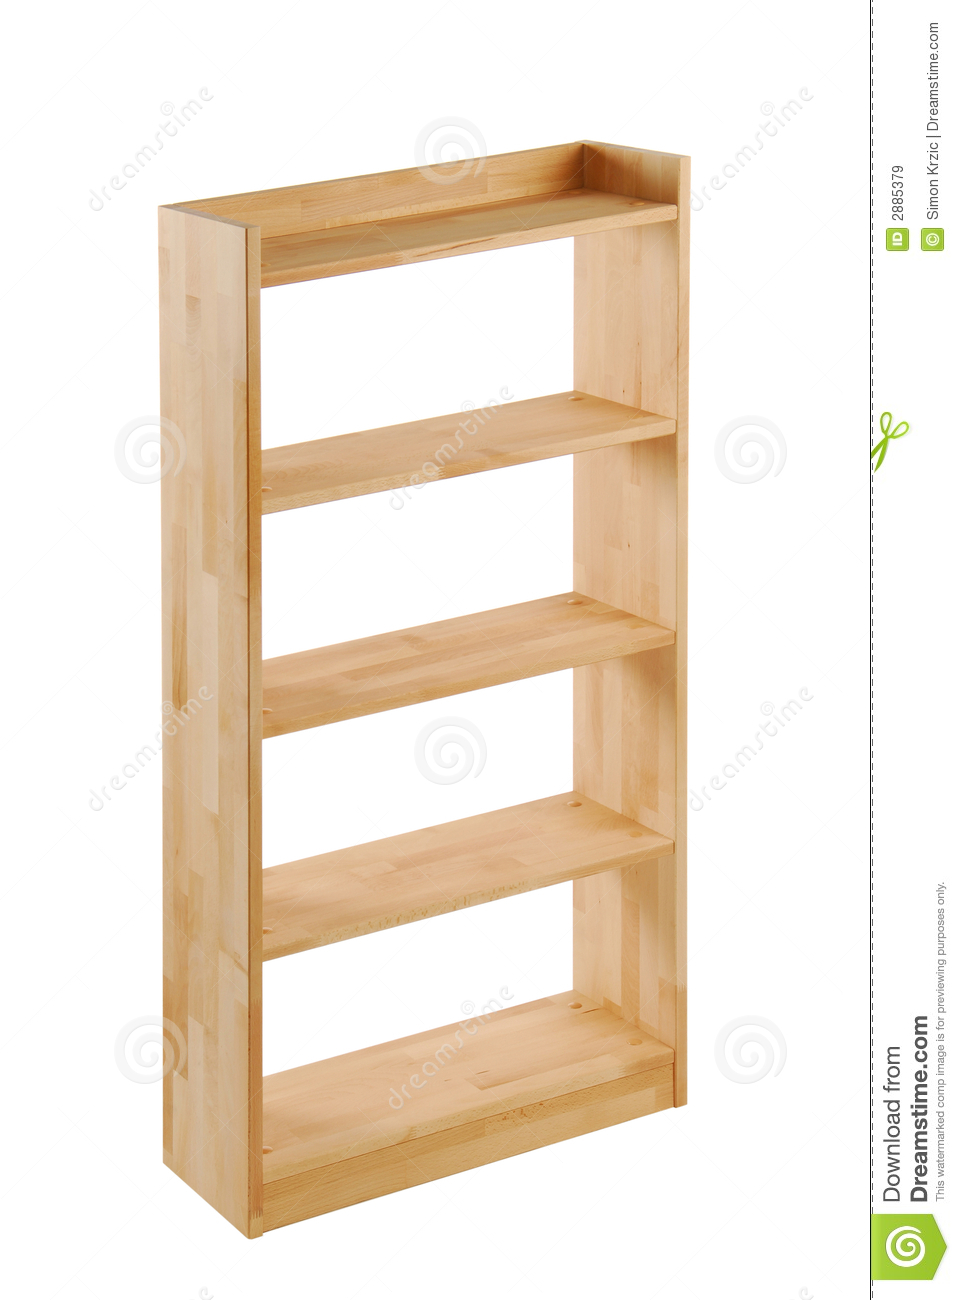 Wooden Bookcase Royalty Free Stock Images - Image: 2885379